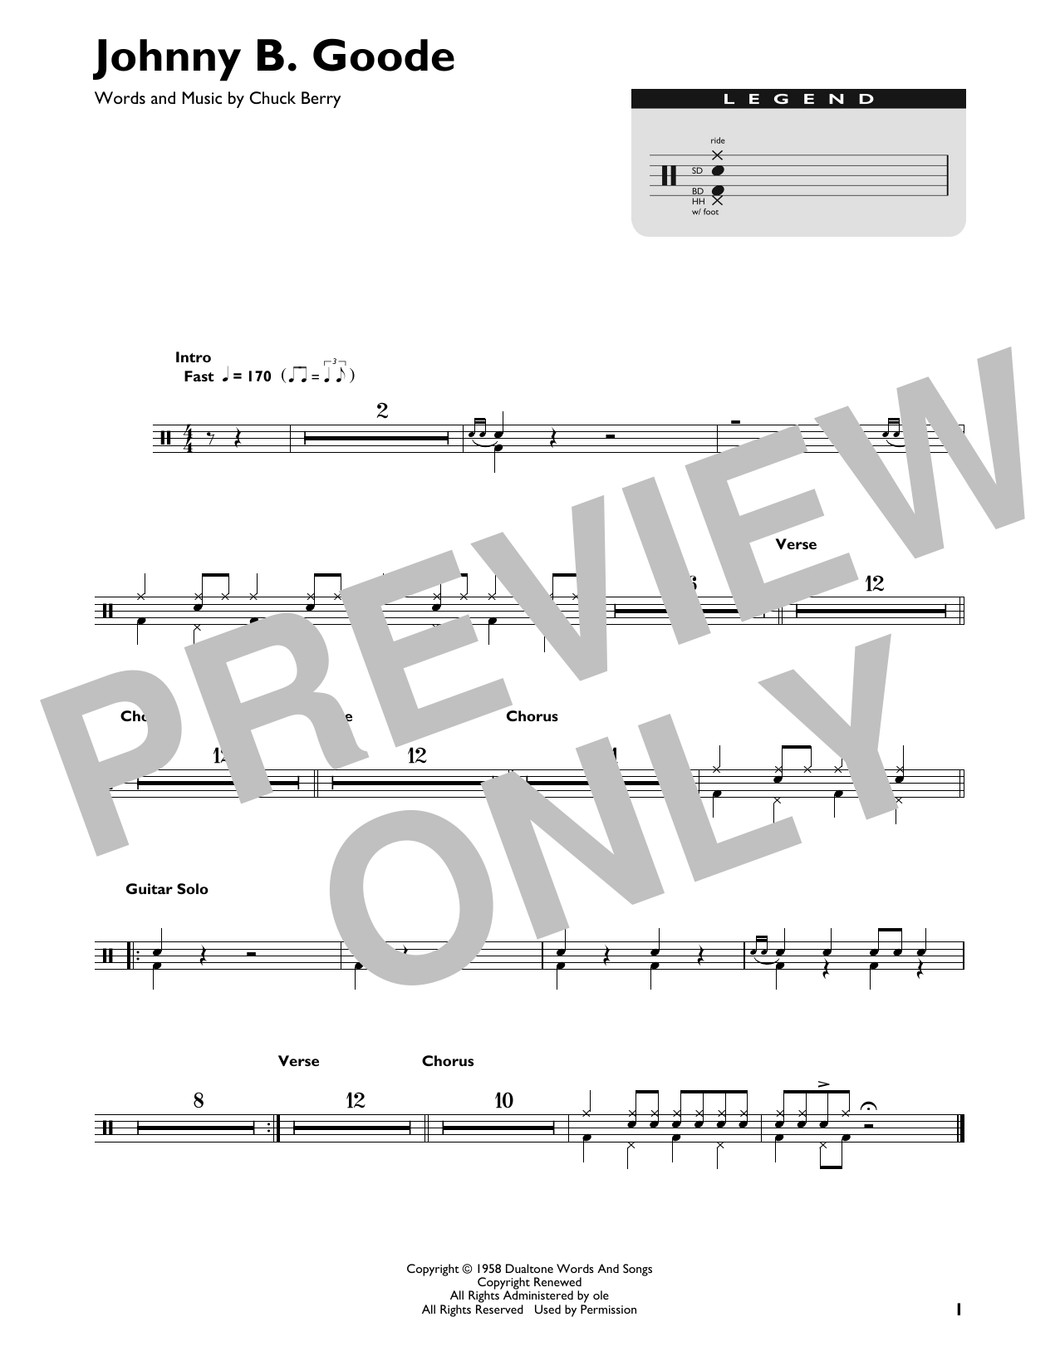 Johnny B. Goode - Chuck Berry - Full Drum Transcription / Drum Sheet Music - SheetMusicDirect DT